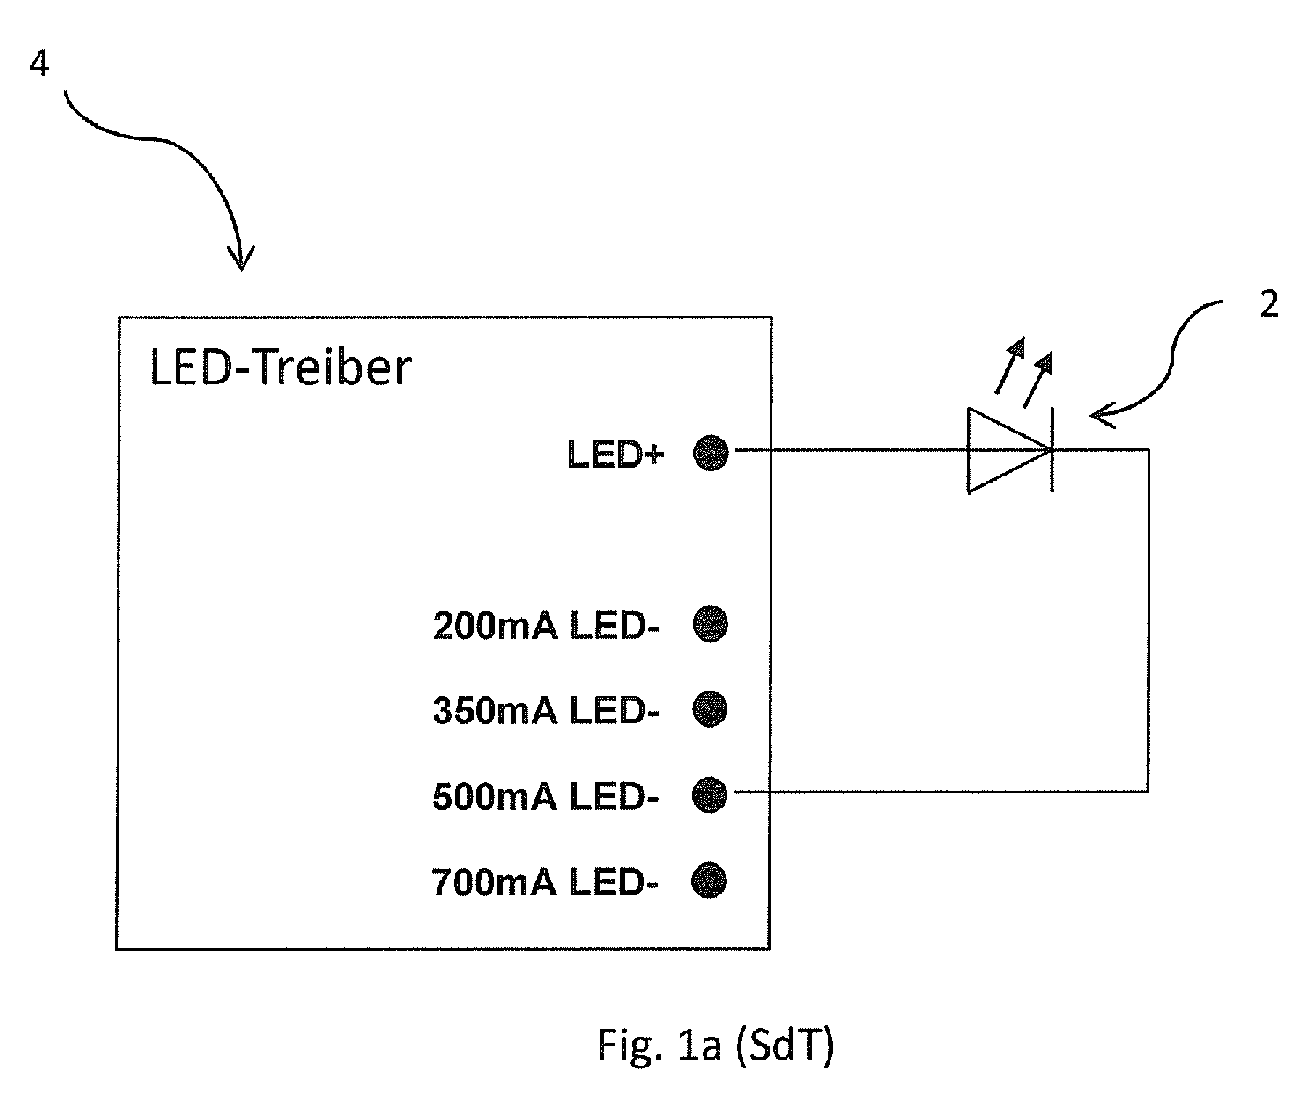 Ep2897444a1 Circuit For Led Current Supply Google Patents Circuits And Resistors Figure Imgaf001